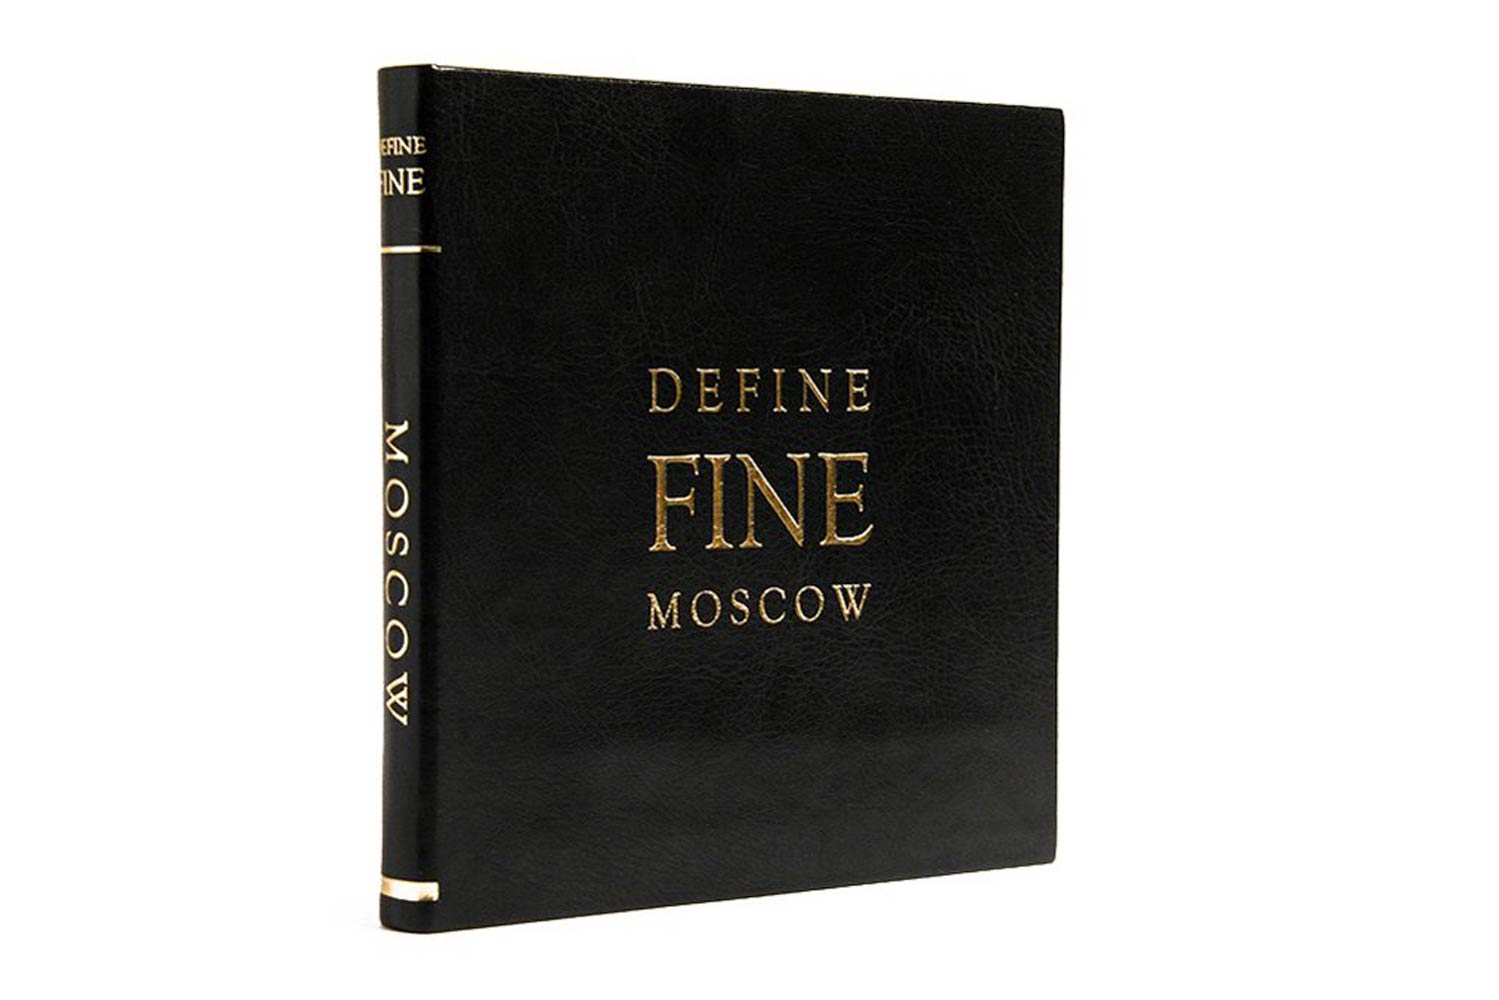 DEFINE FINE MOSCOW